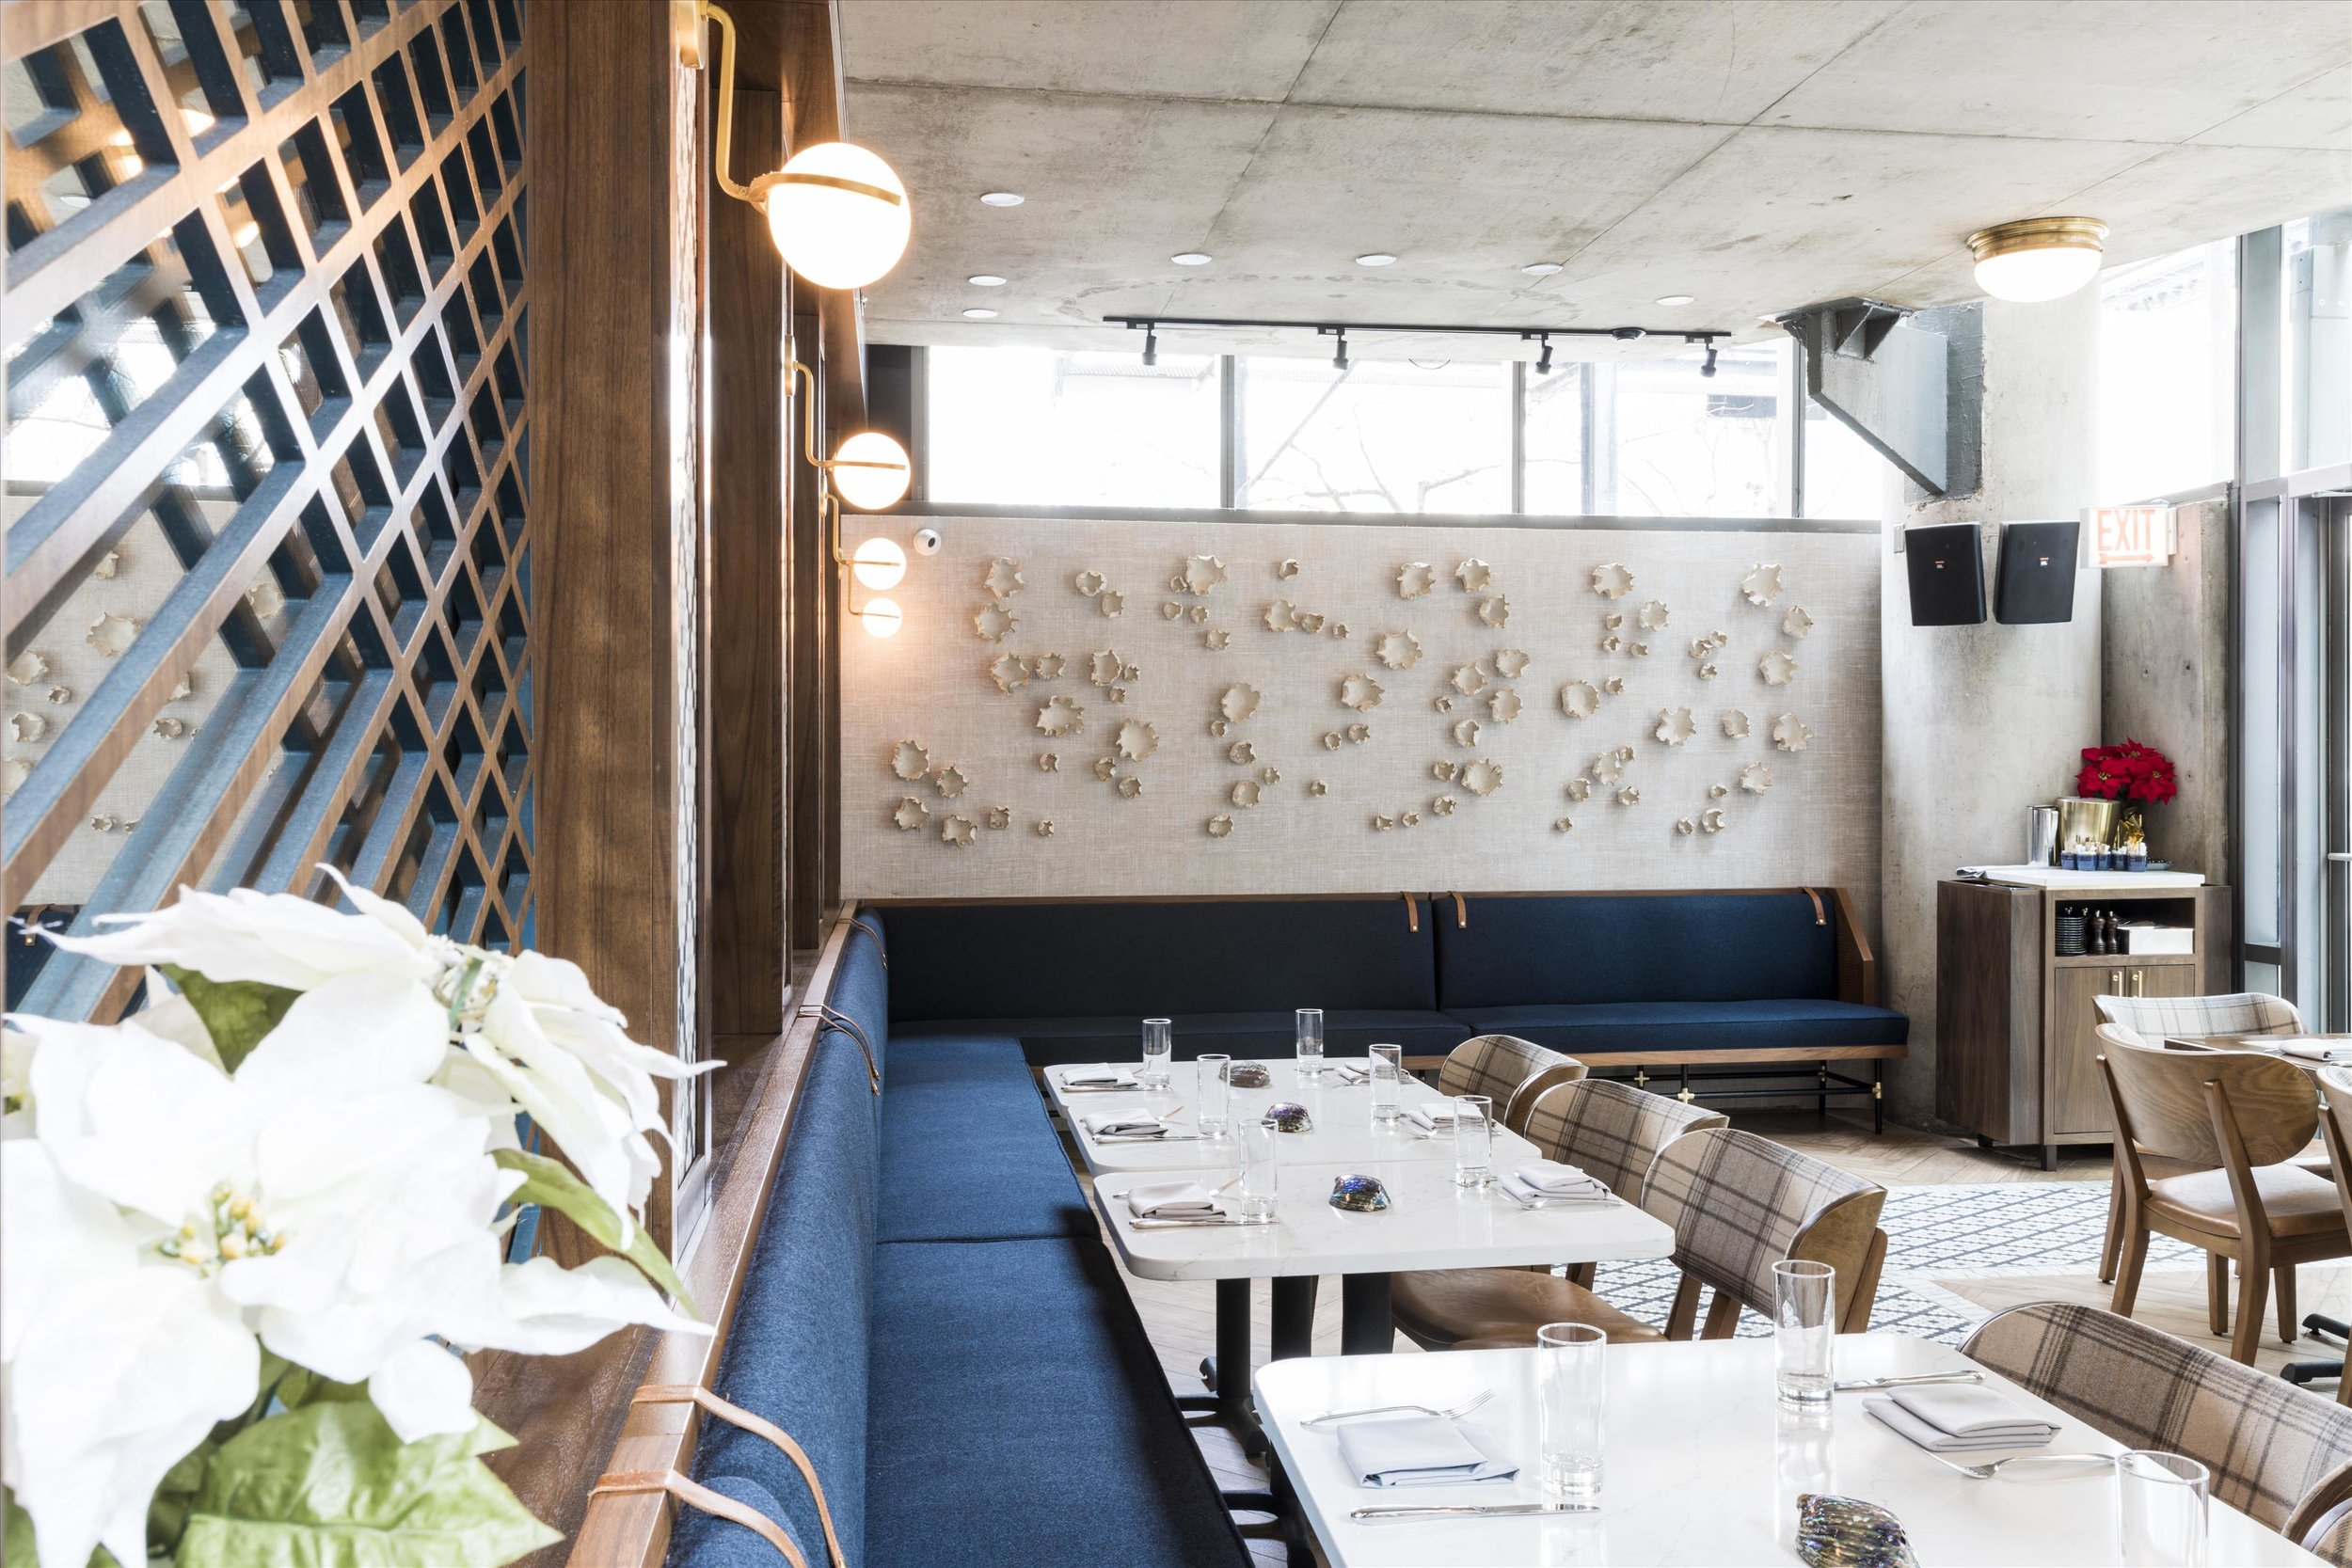 PORTSMITH RESTAURANT - Curated by Indiewalls